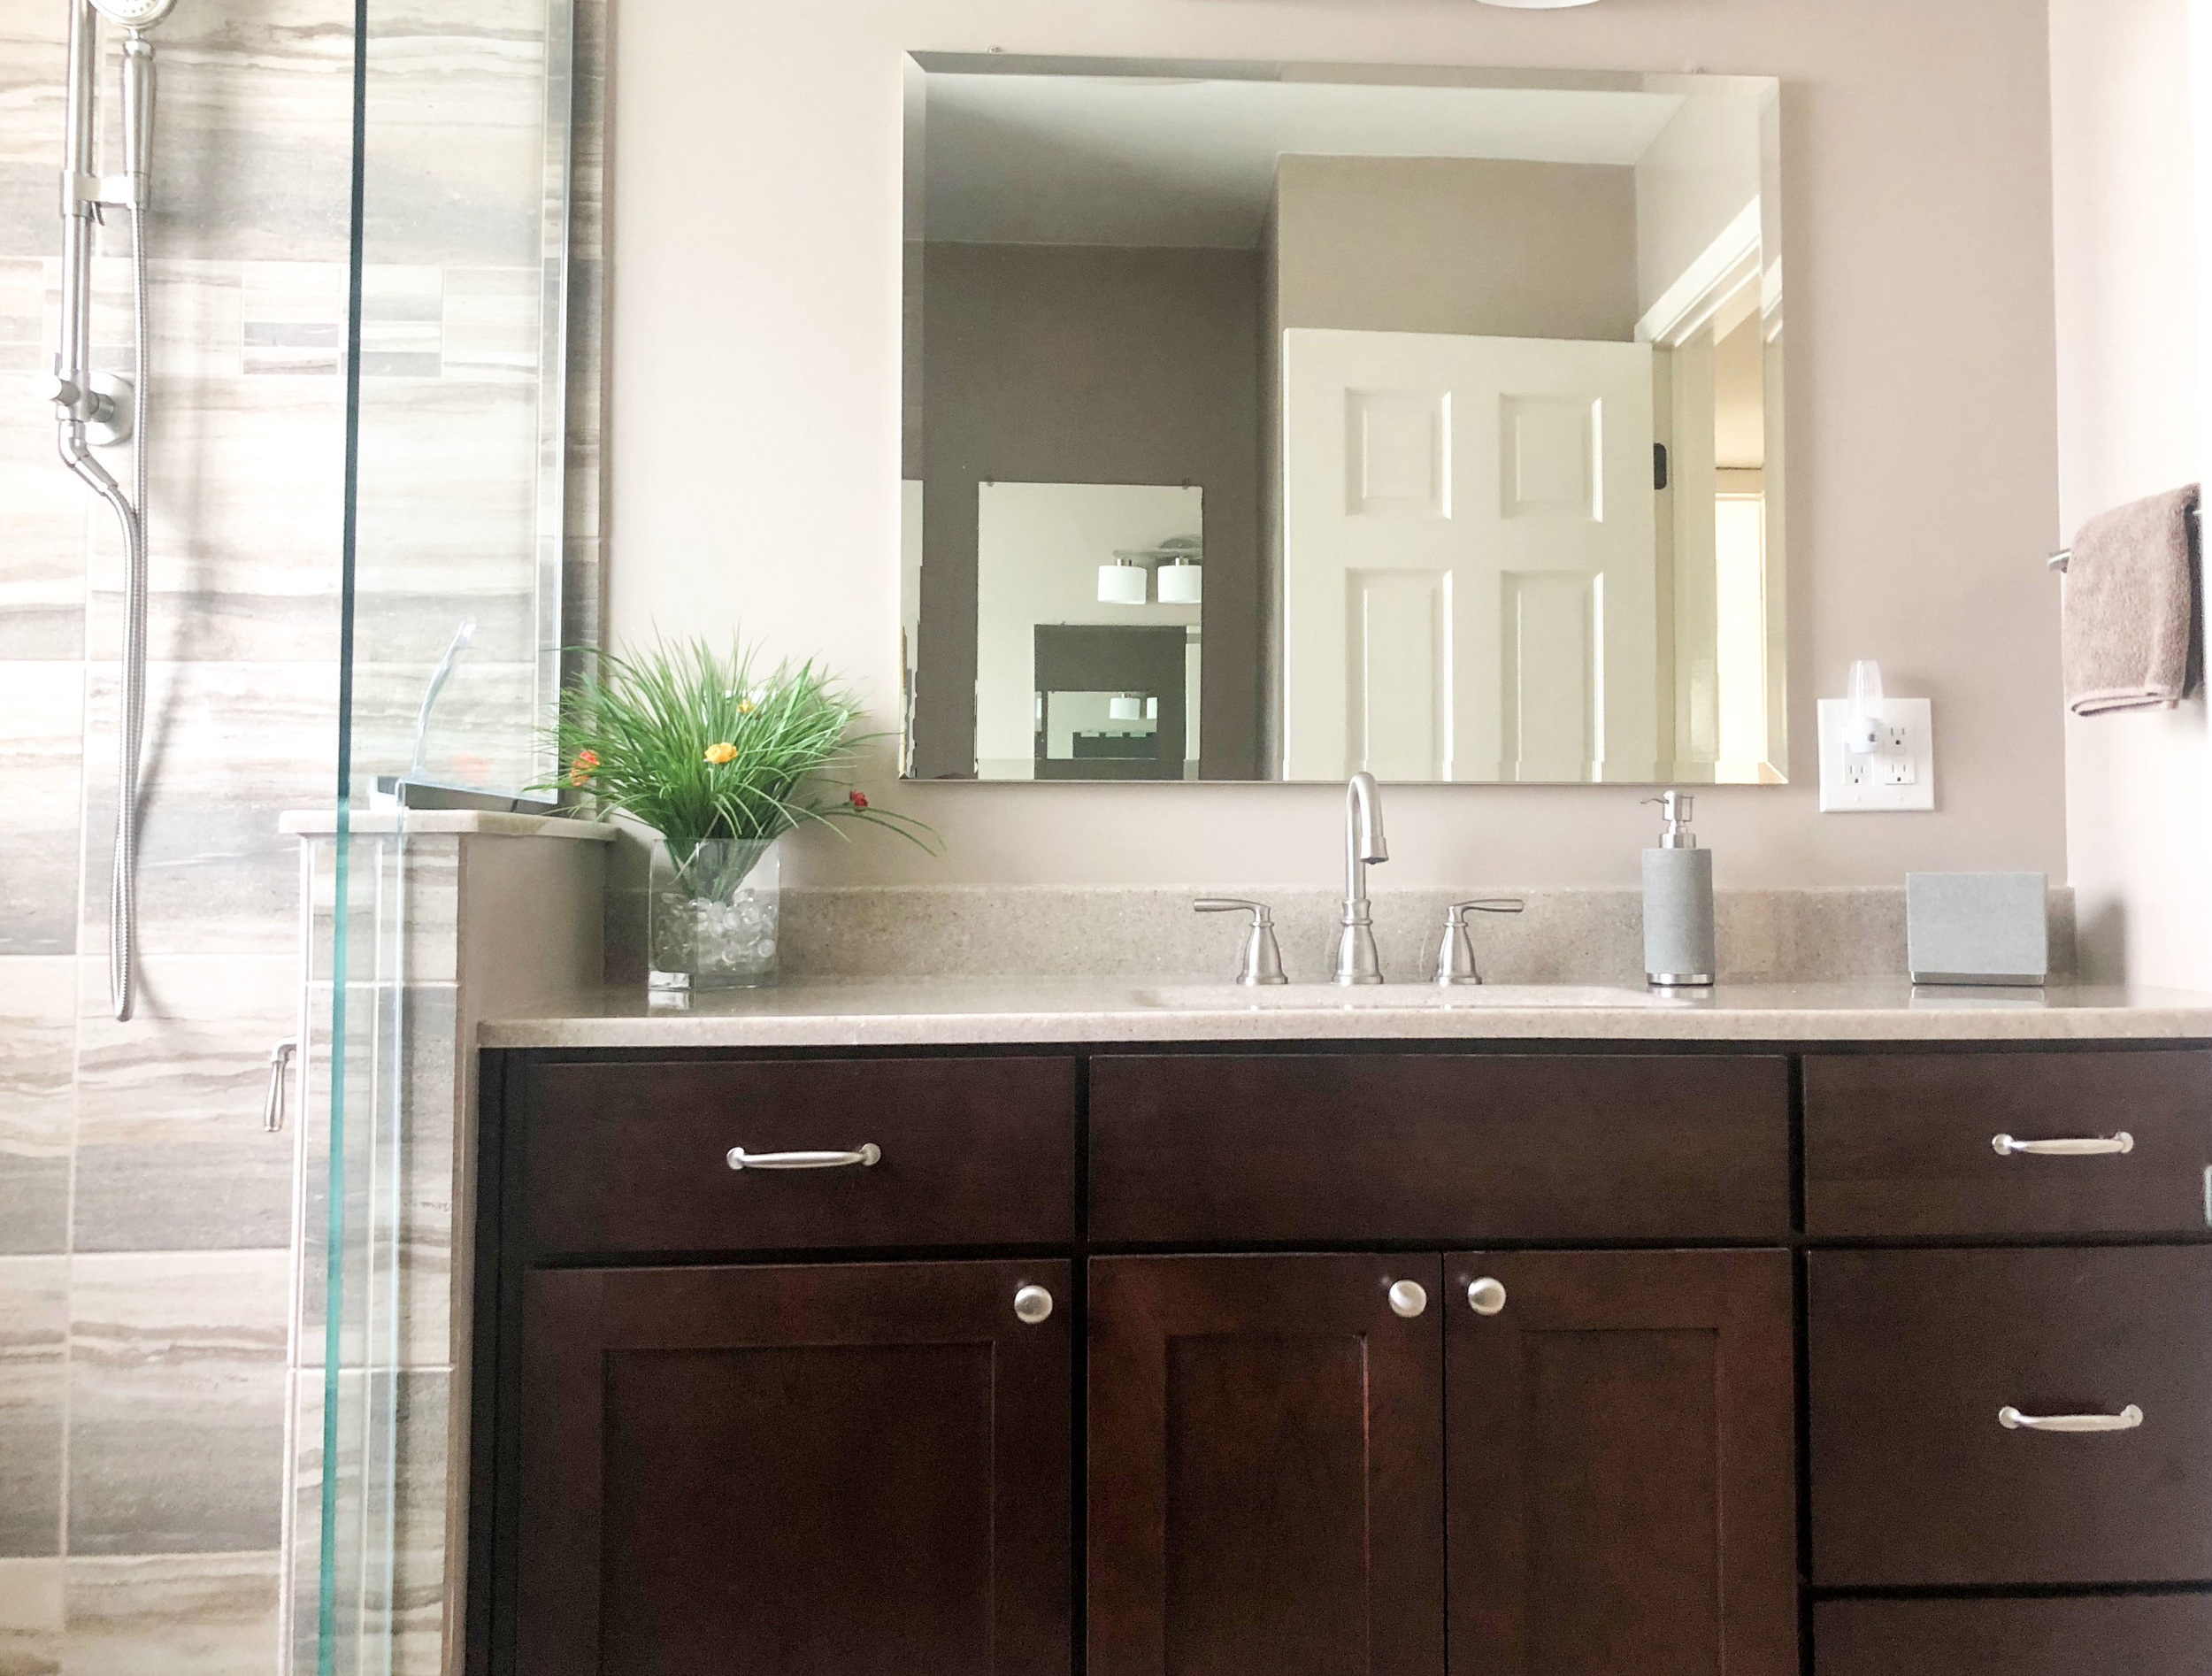 Our Portfolio - View some of our favorite plumbing & drain projects!